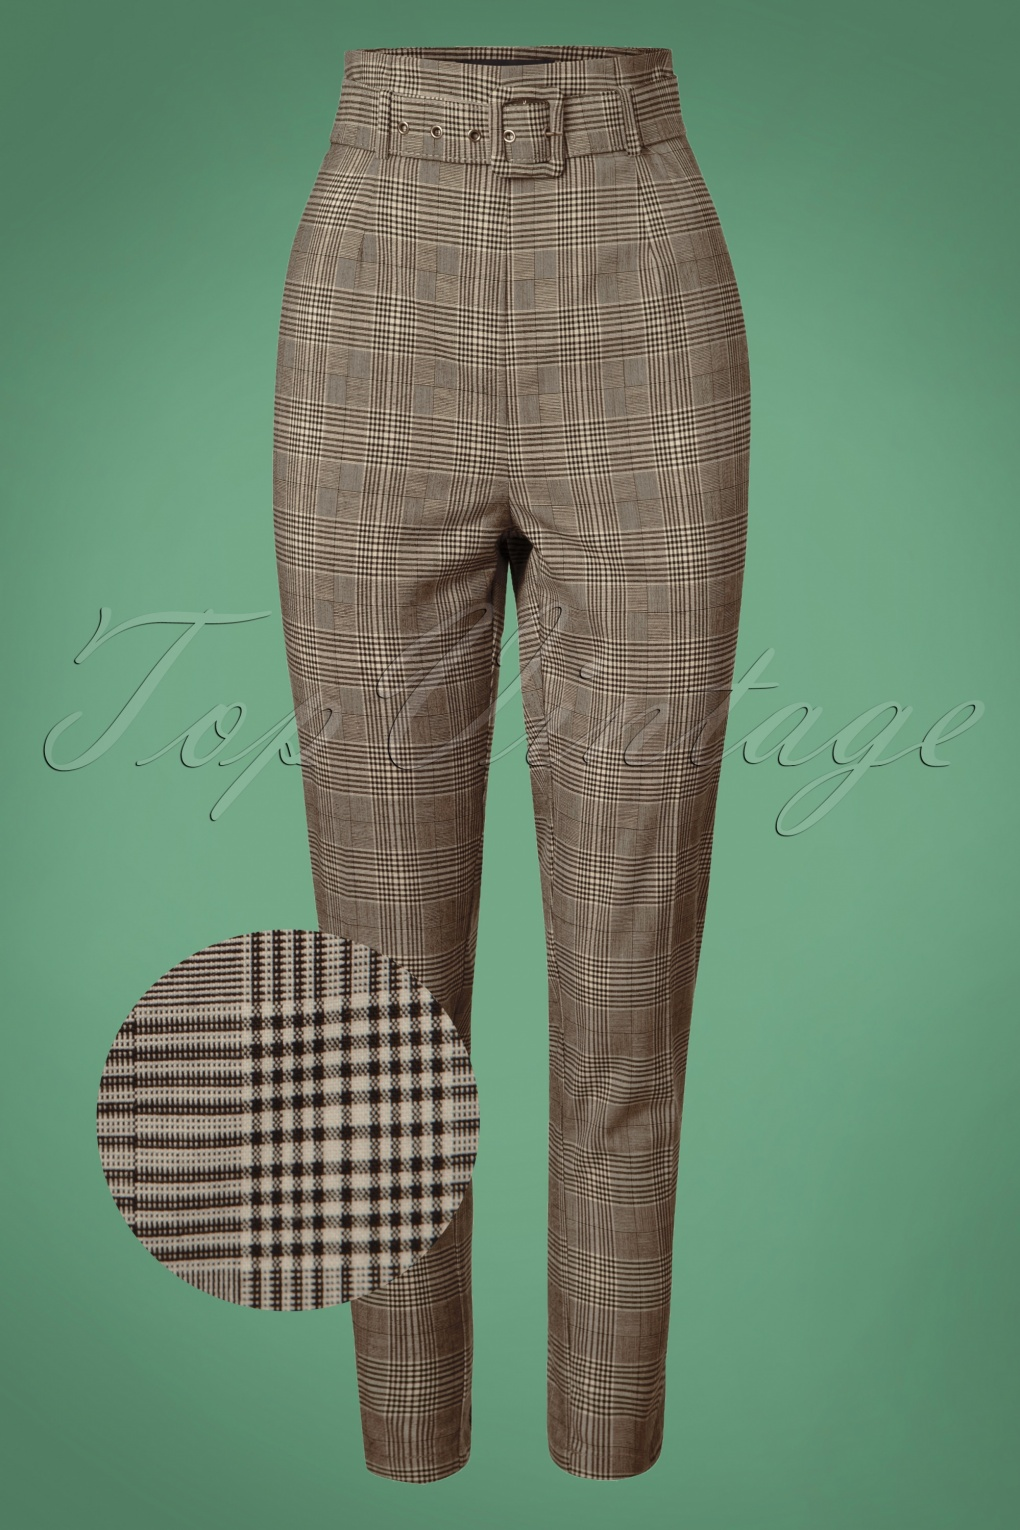 1950s Pants & Jeans- High Waist, Wide Leg, Capri, Pedal Pushers 50s Thea Check Trousers in Brown £44.92 AT vintagedancer.com